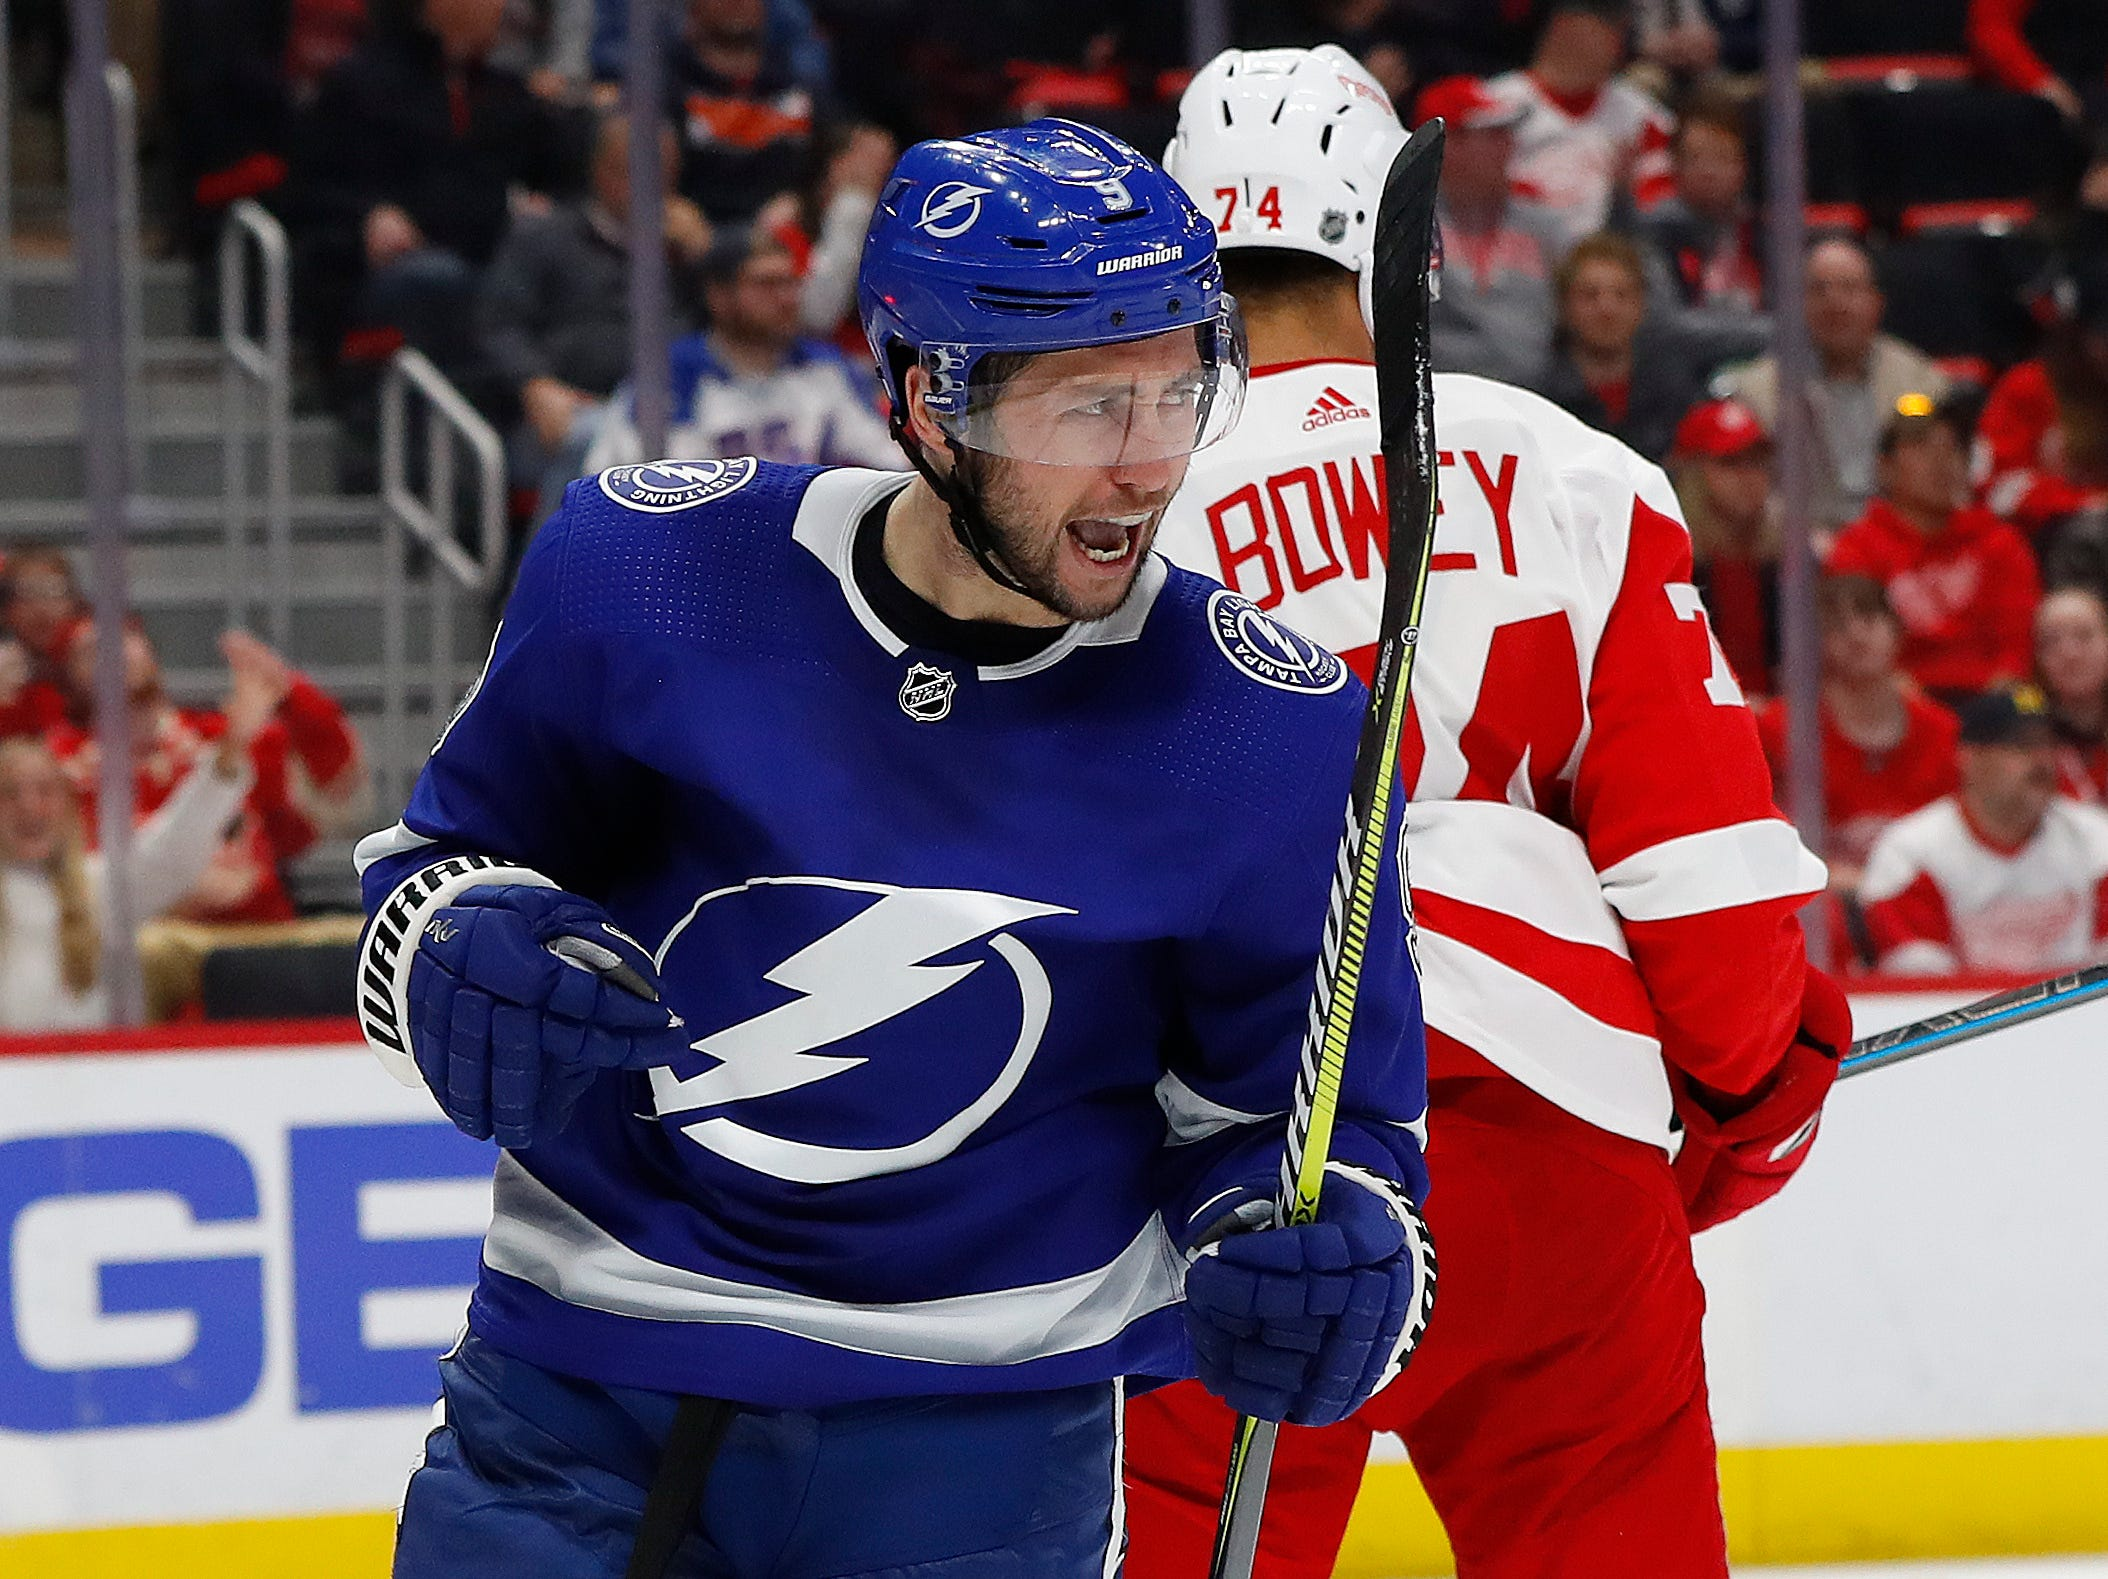 Tampa Bay Lightning center Tyler Johnson (9) celebrates his goal against the Detroit Red Wings in the third period.